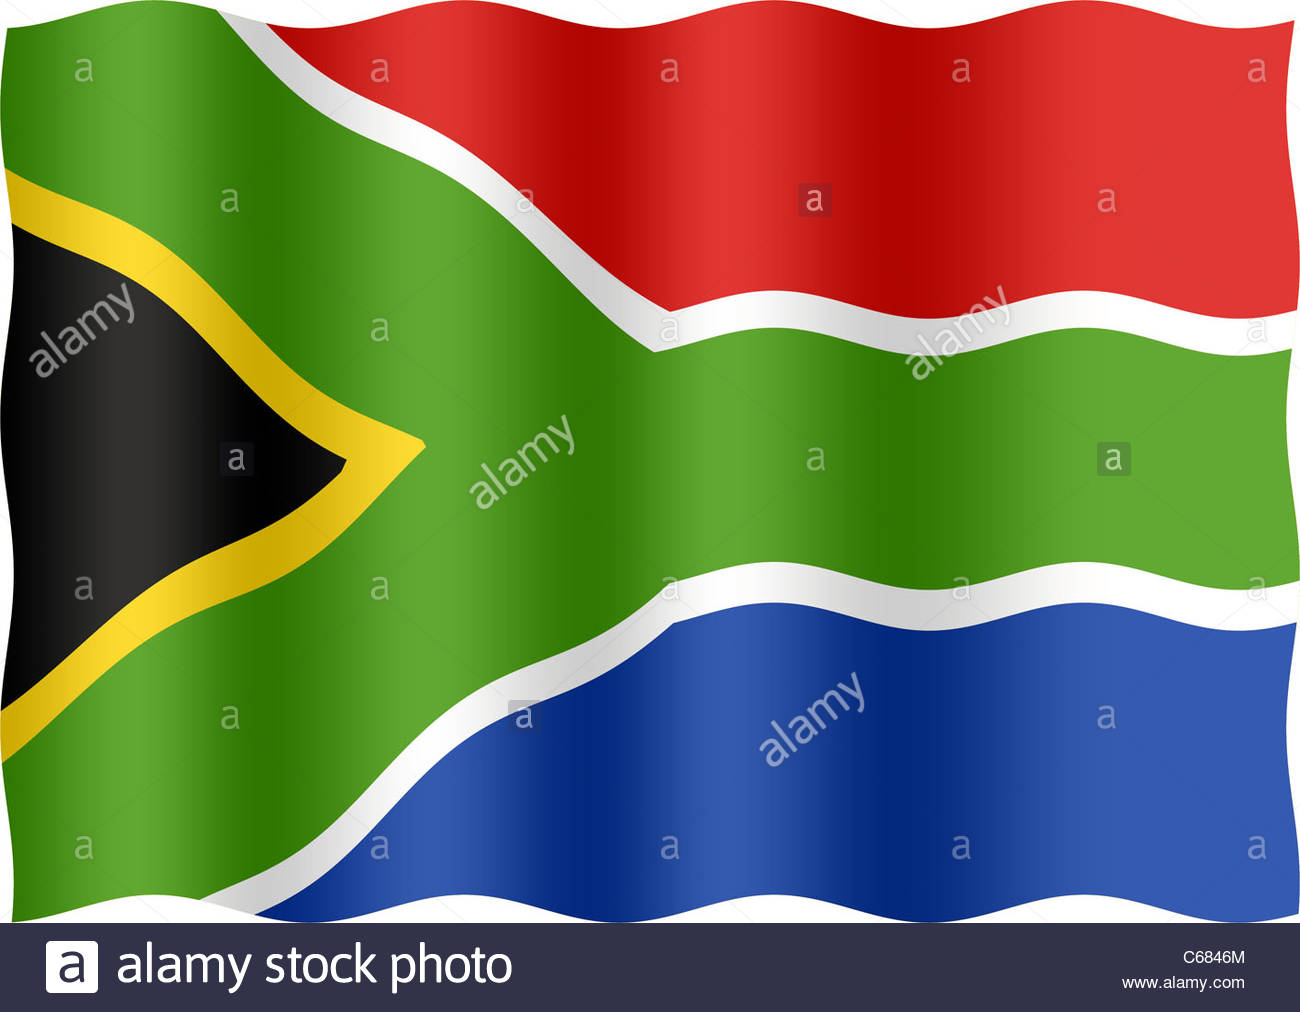 South African flag - Stock Image